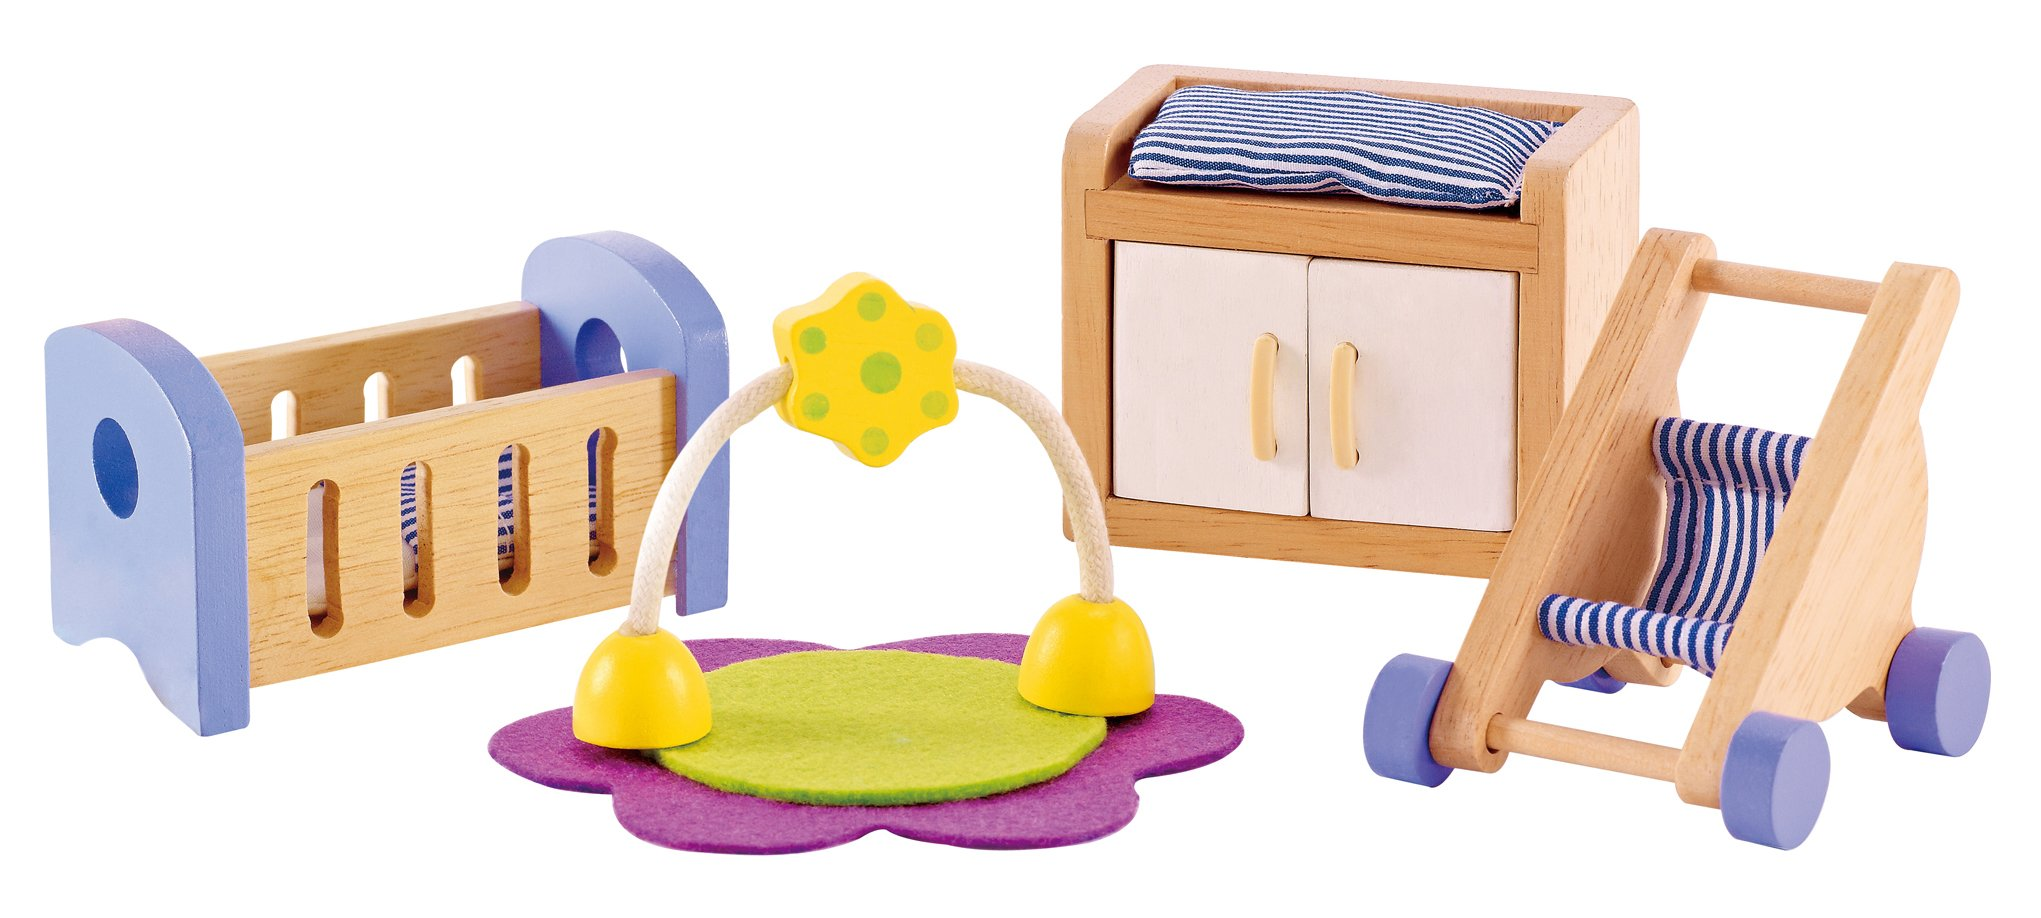 Hape Wooden Doll House Furniture Baby's Room Set by Hape